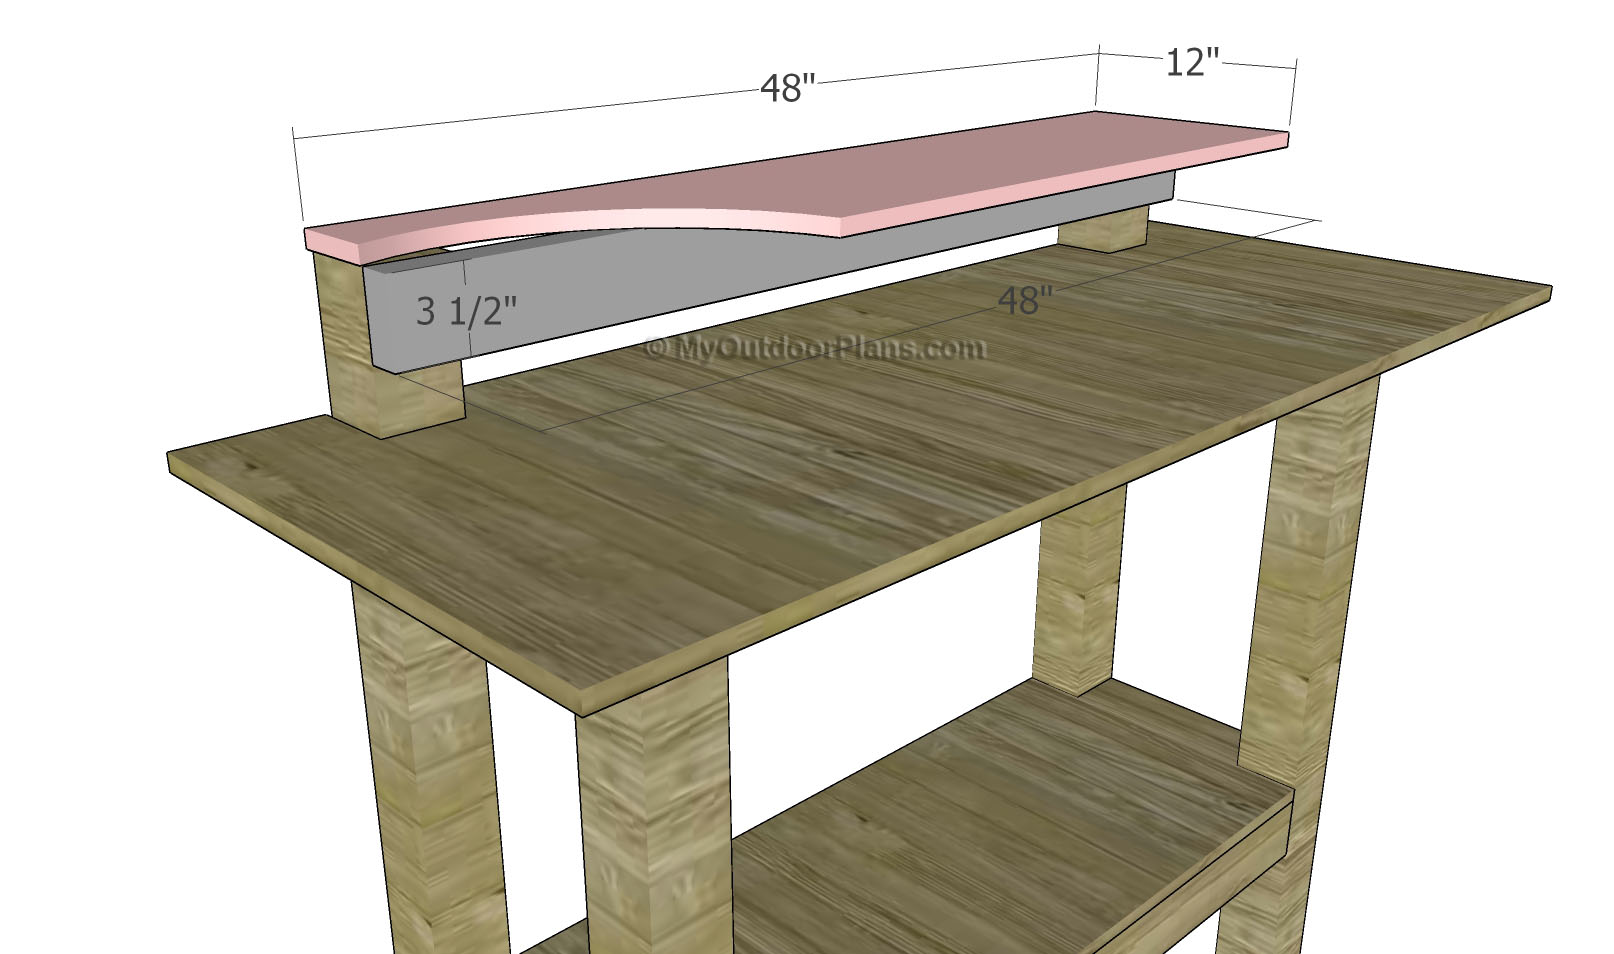 Stand Up Desk Designs : Stand up desk plans free outdoor diy shed